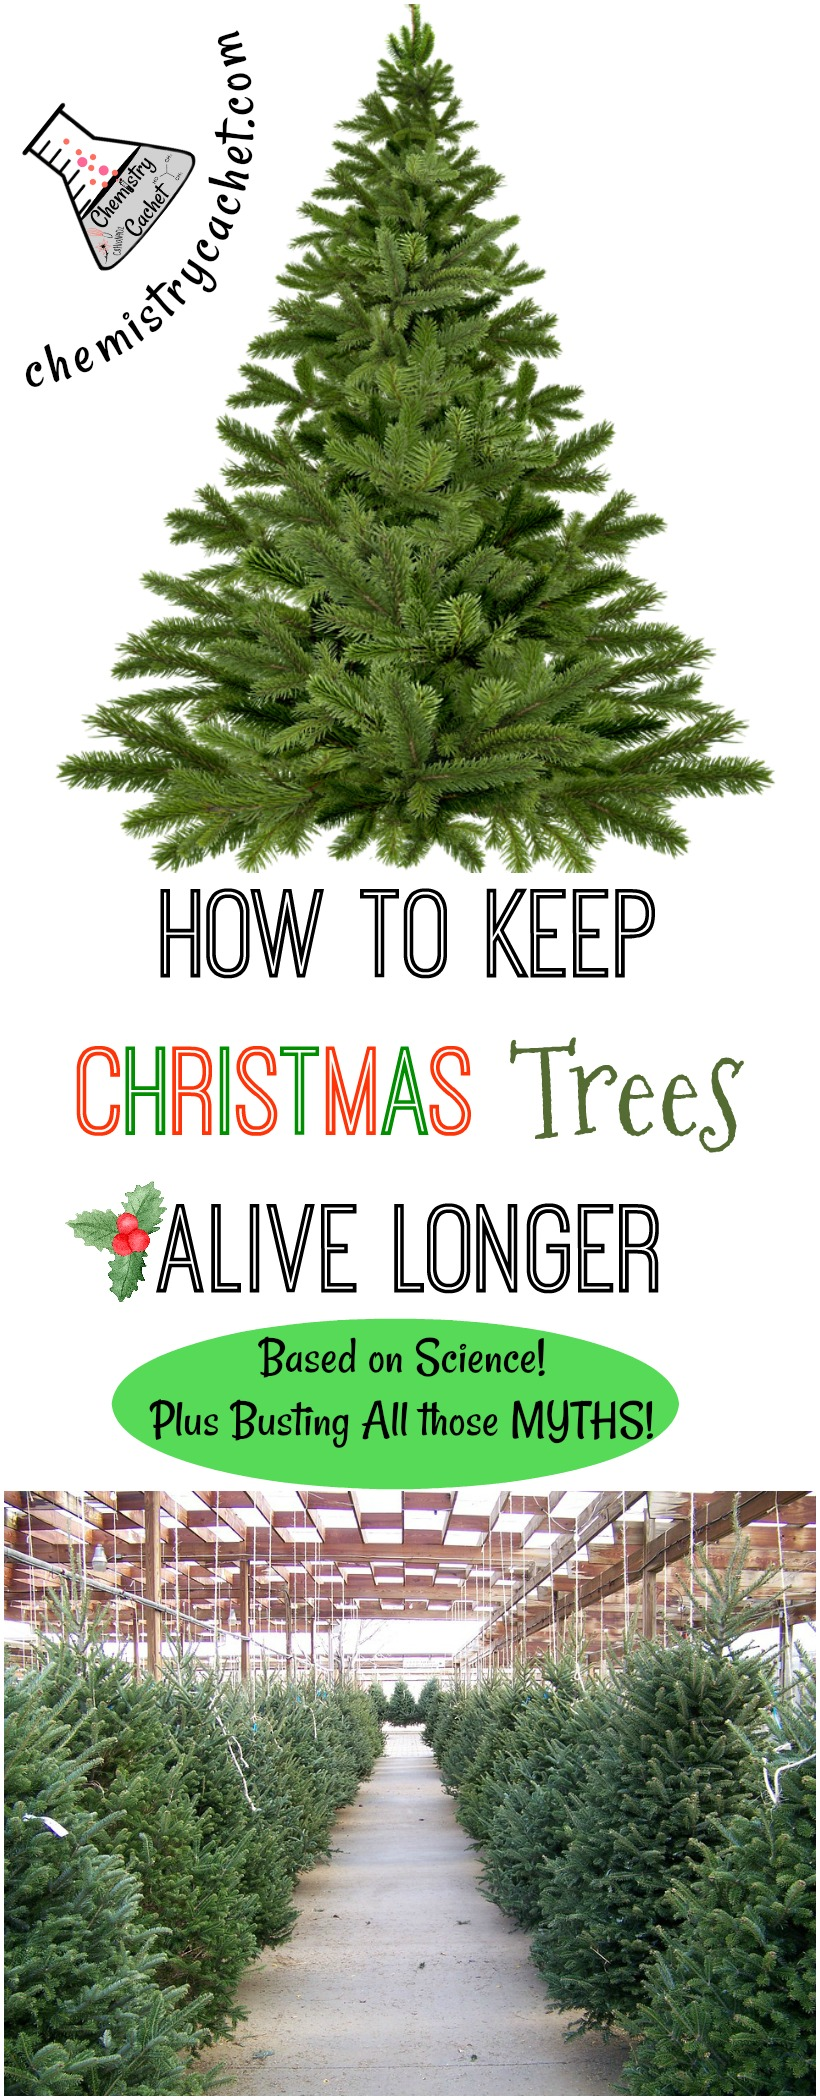 Busting all the myths out there! How to Keep Christmas Trees Alive Longer based on Science! on chemistrycachet.com